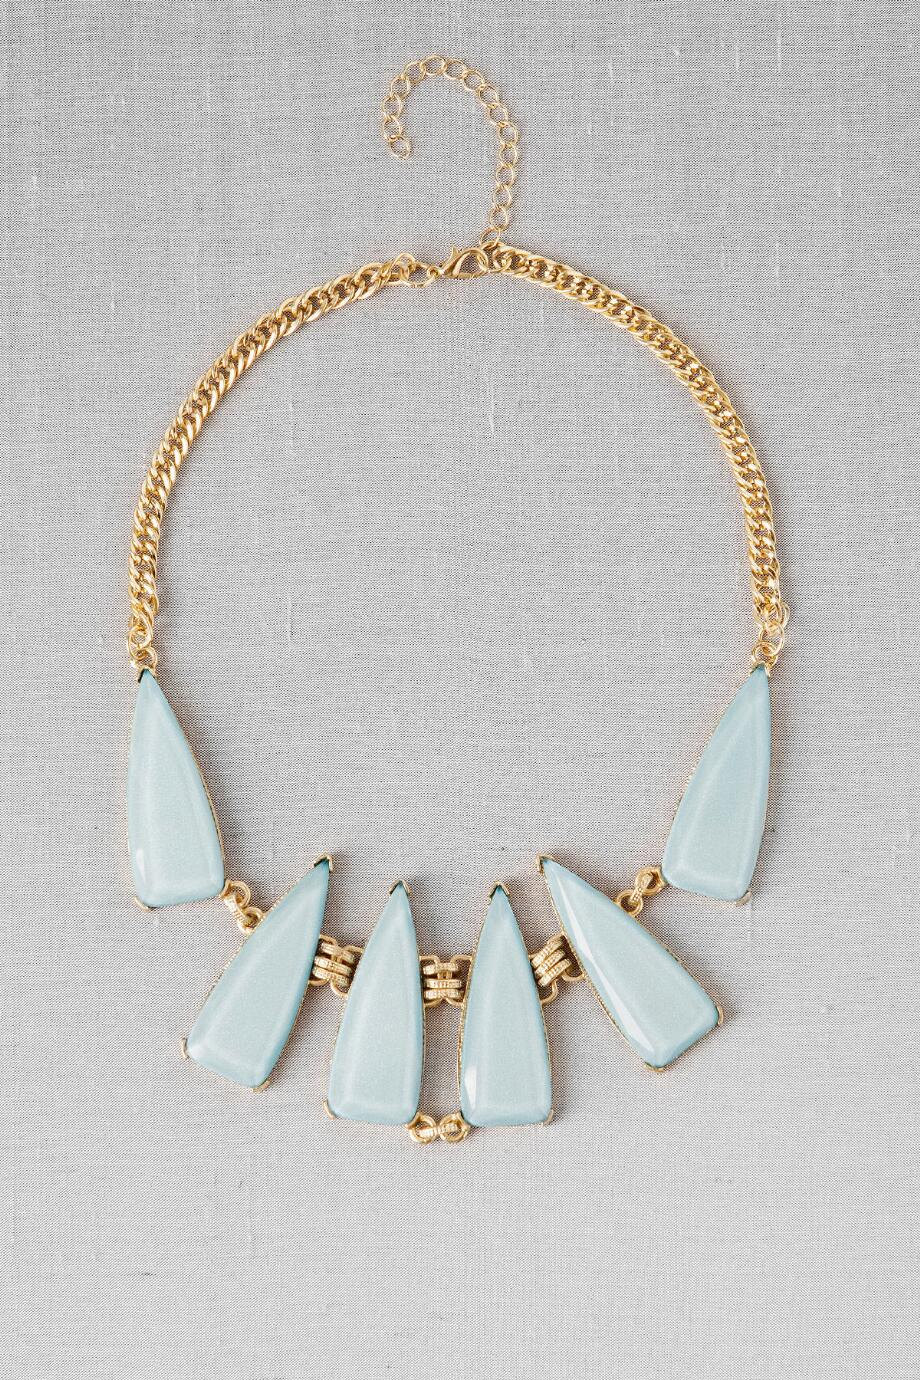 Salzburg Geometric Statement Necklace in Light Blue